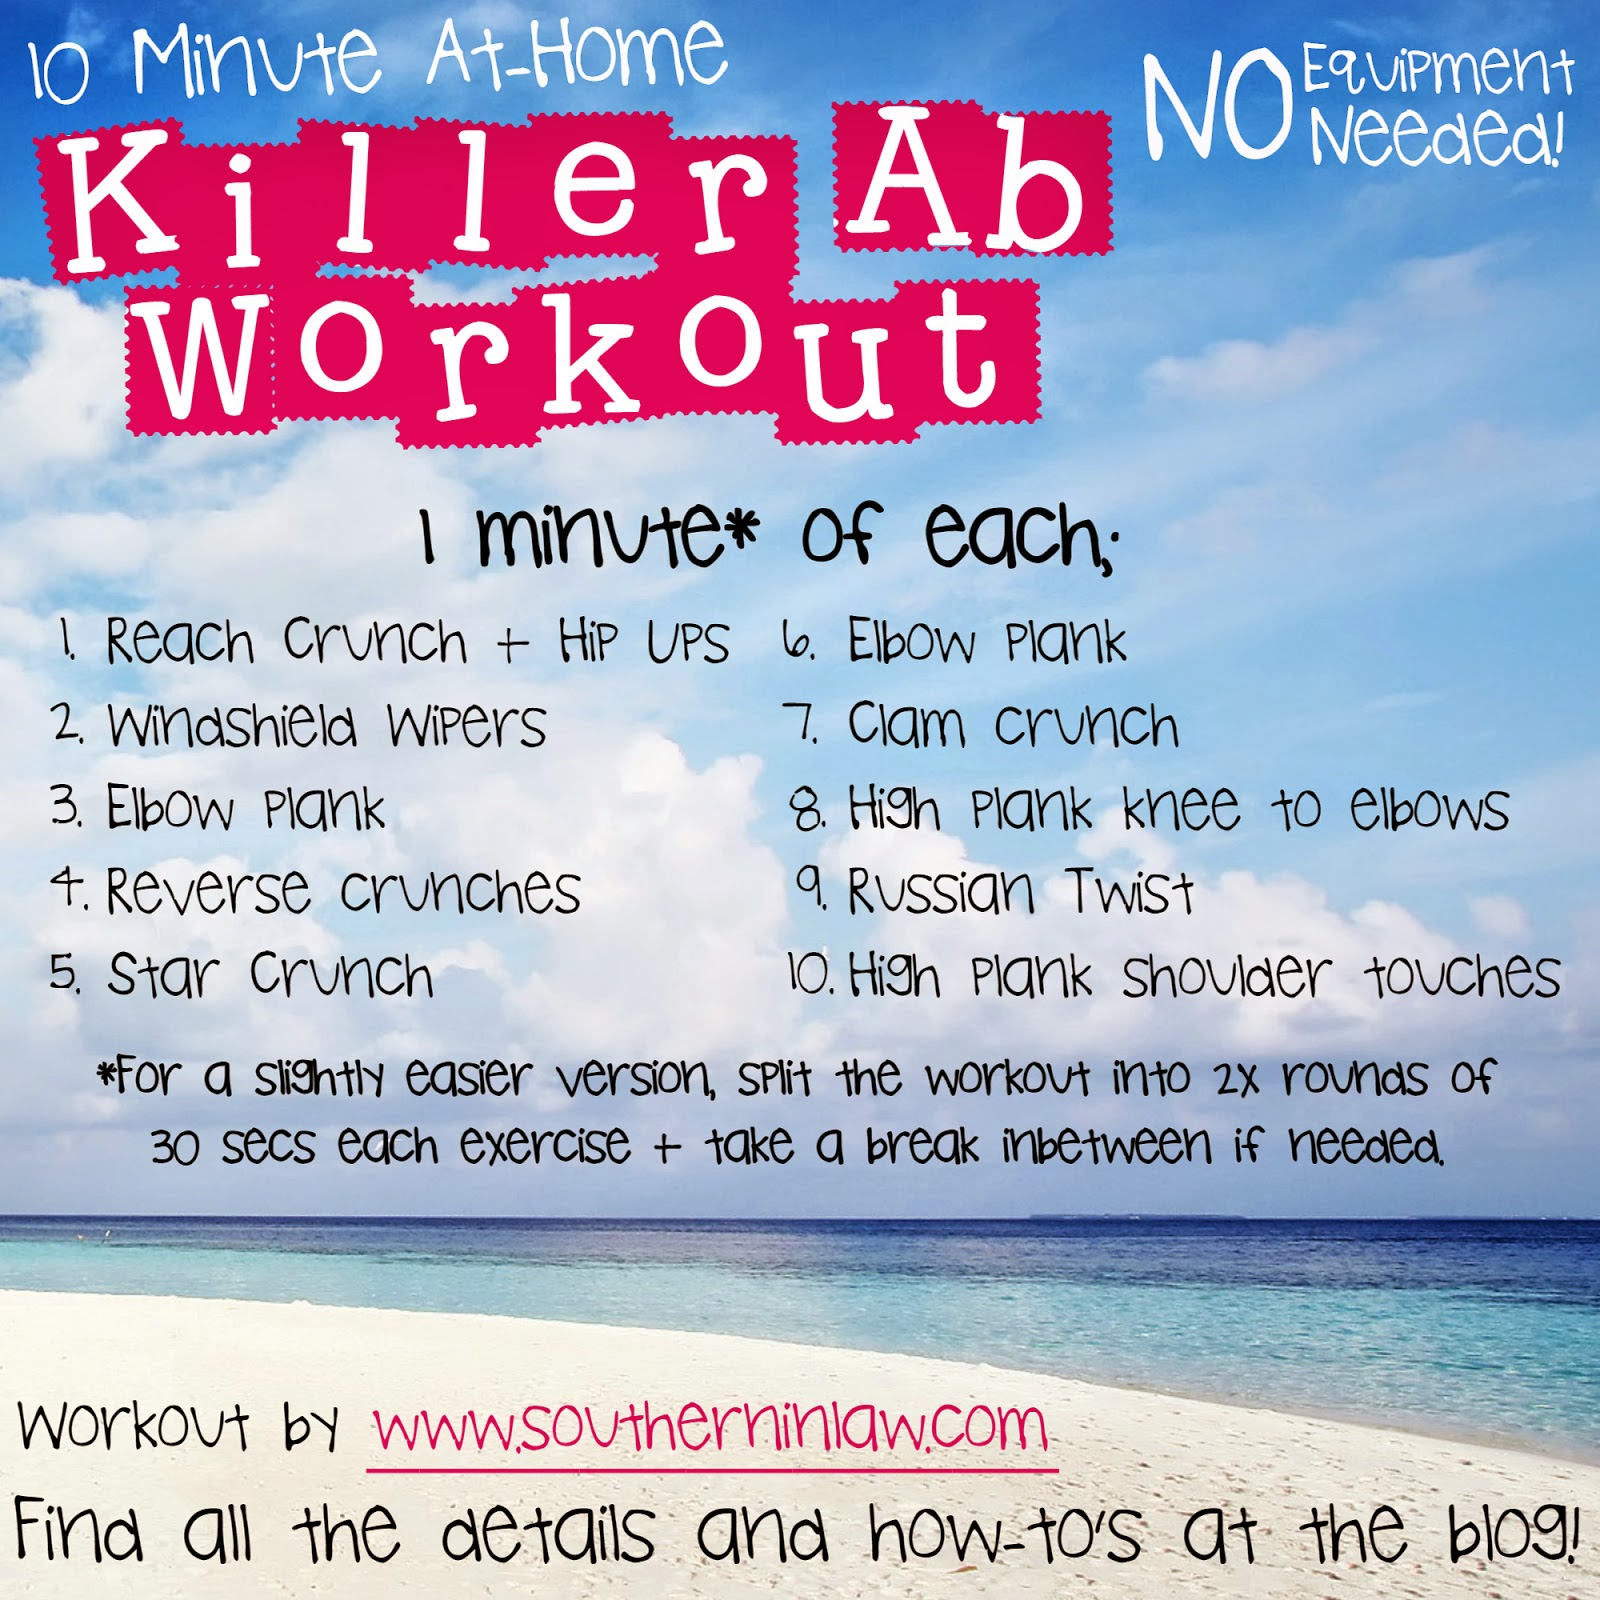 Southern In Law: Killer 10 Minute Ab Workout